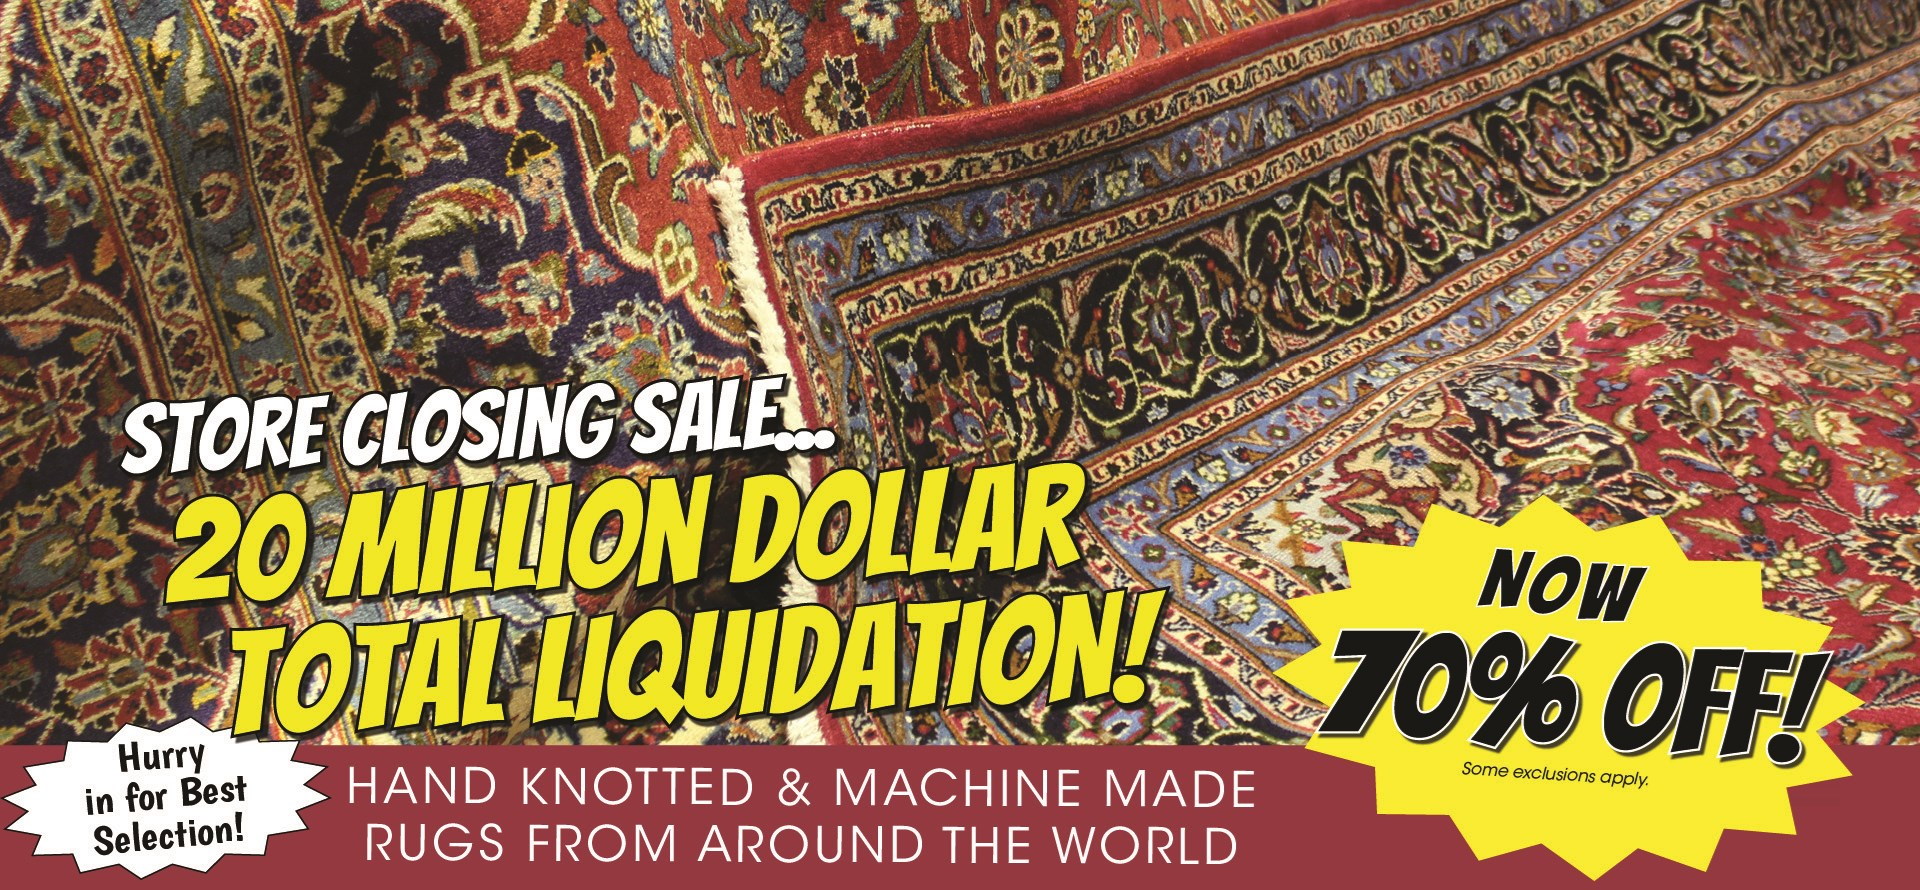 Store Closing Sale! Take 65% Off in the Fine Rug Gallery